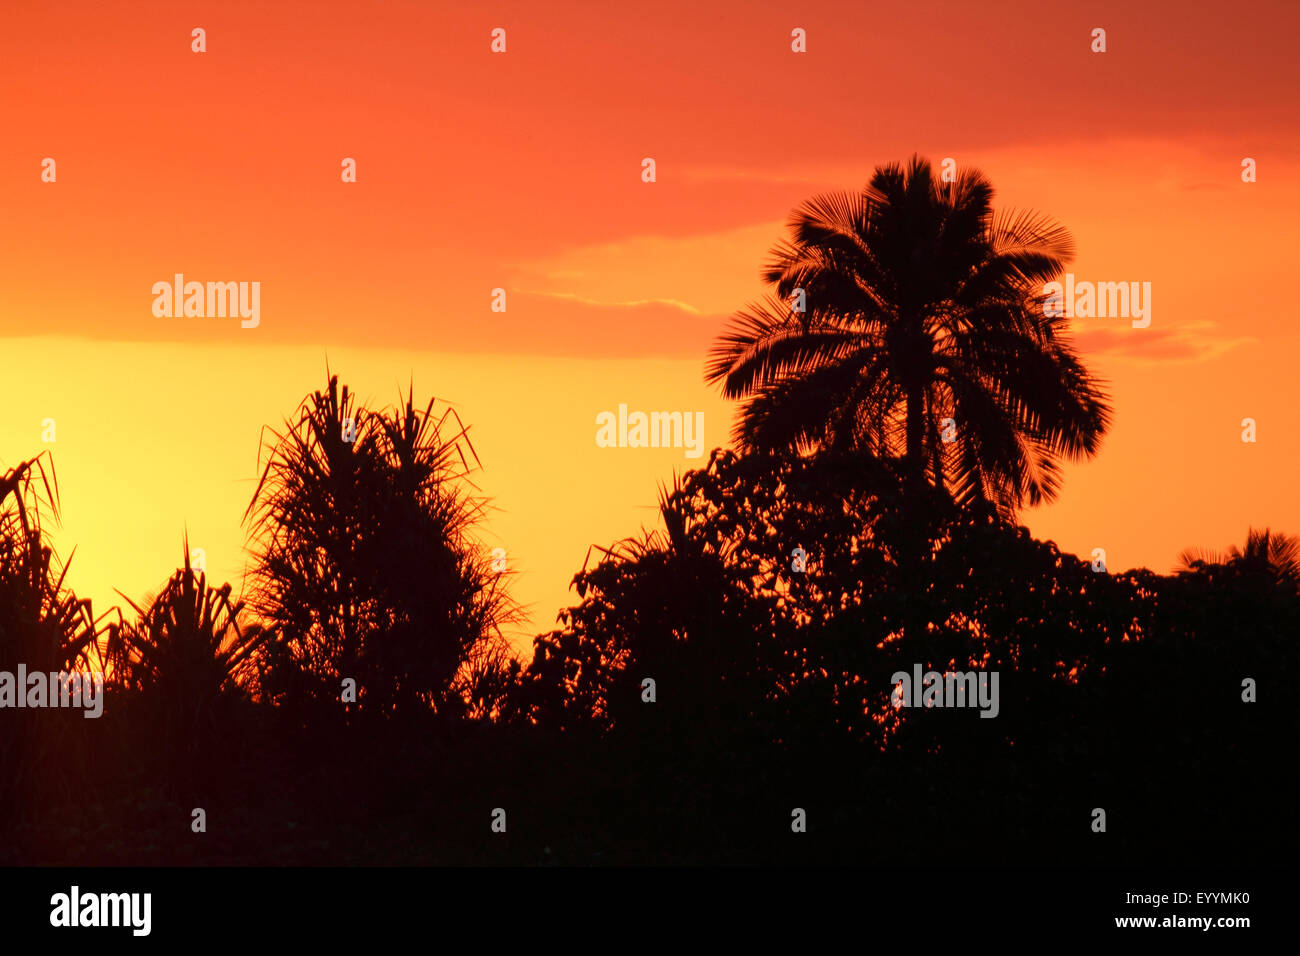 topical plants and palm tree in front of the sunrise, Madagascar, Isalo National Park - Stock Image